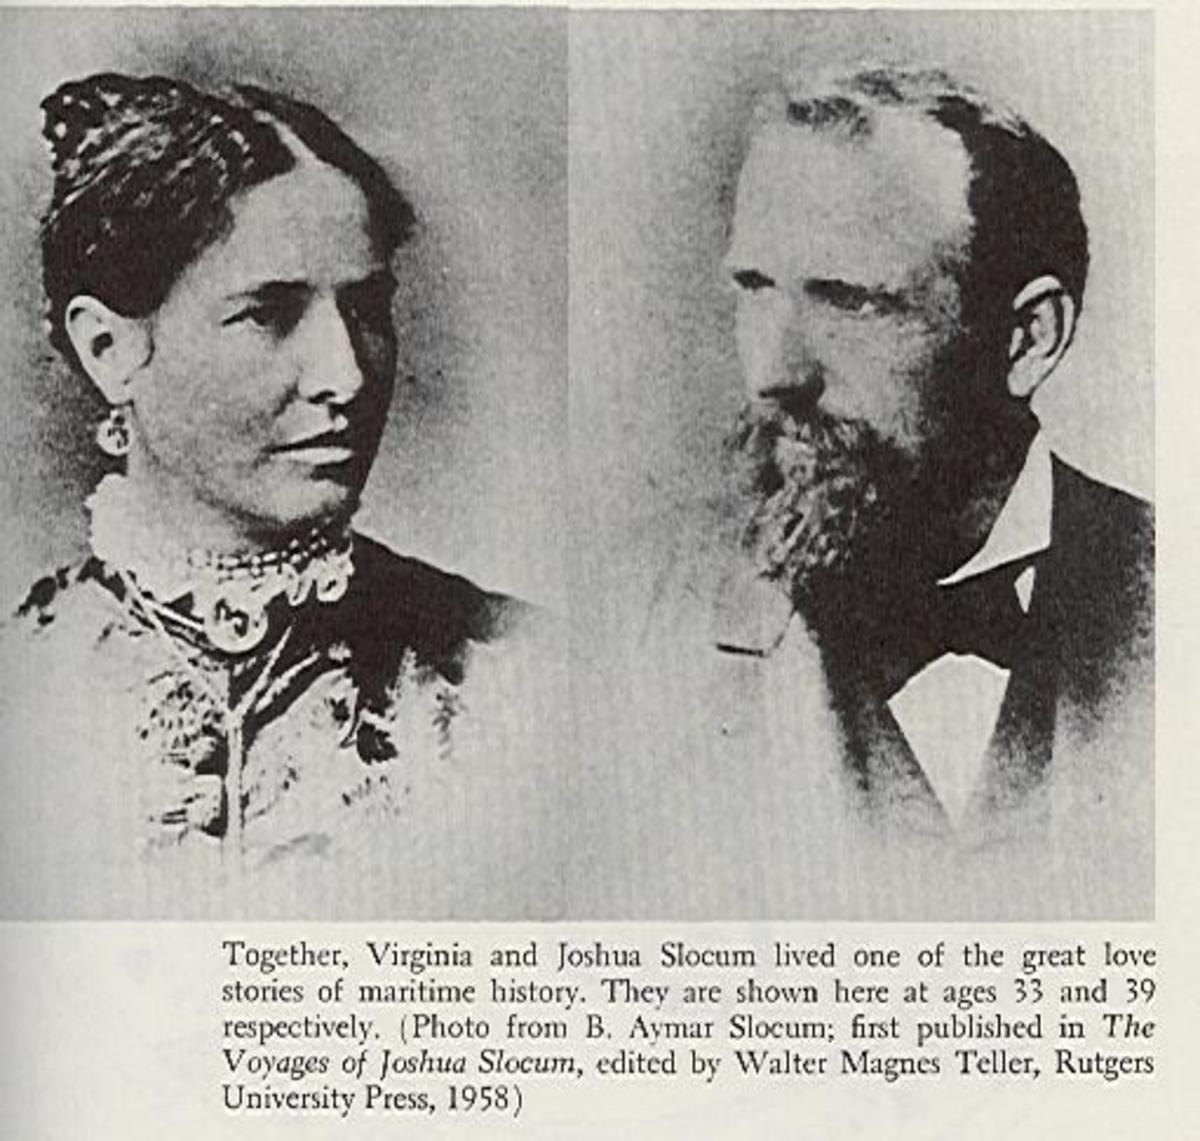 Joshua and Virginia Slocum